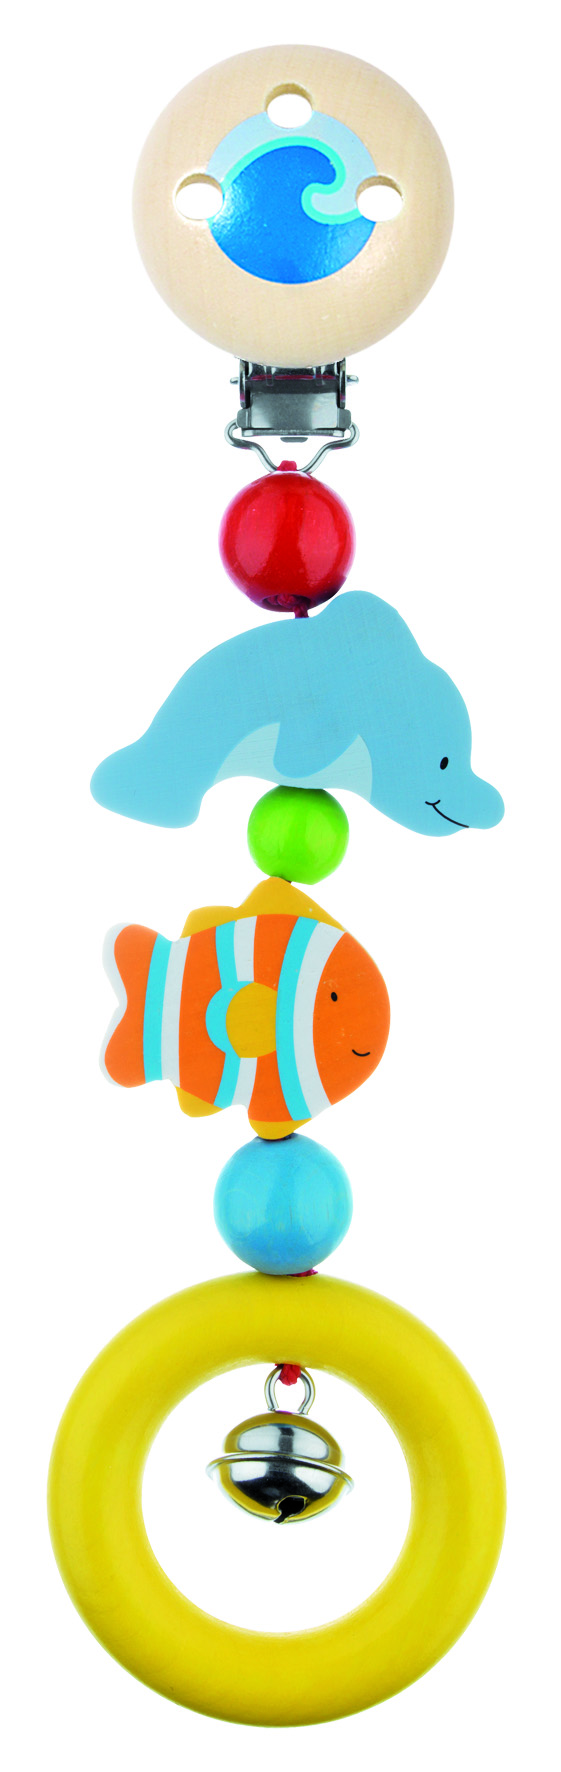 Heimess Clip On Toy Marine Animals (med bilder)